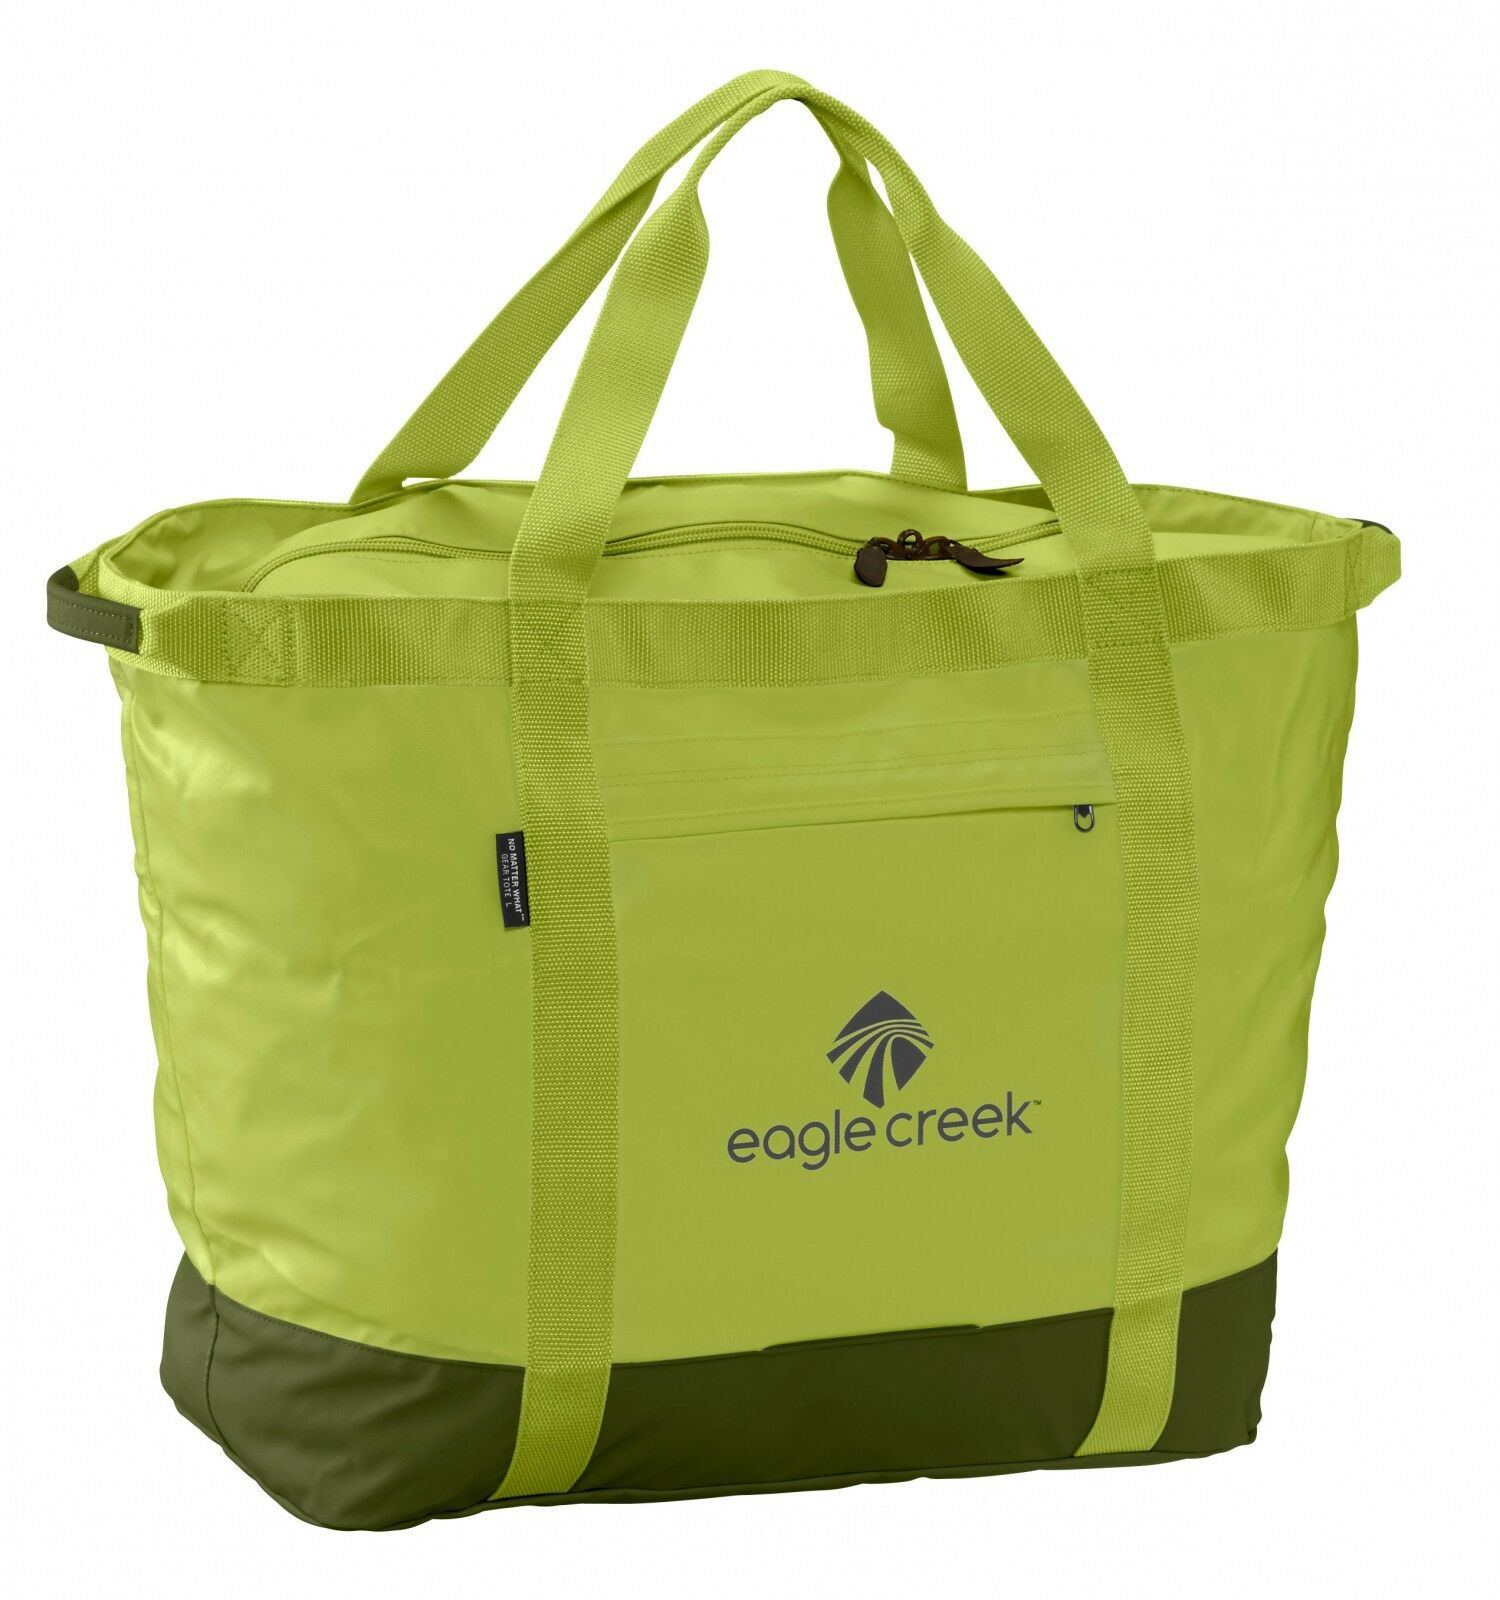 Eagle creek Sac negozioper No Matter Wha Gear Tote L Strobe verde